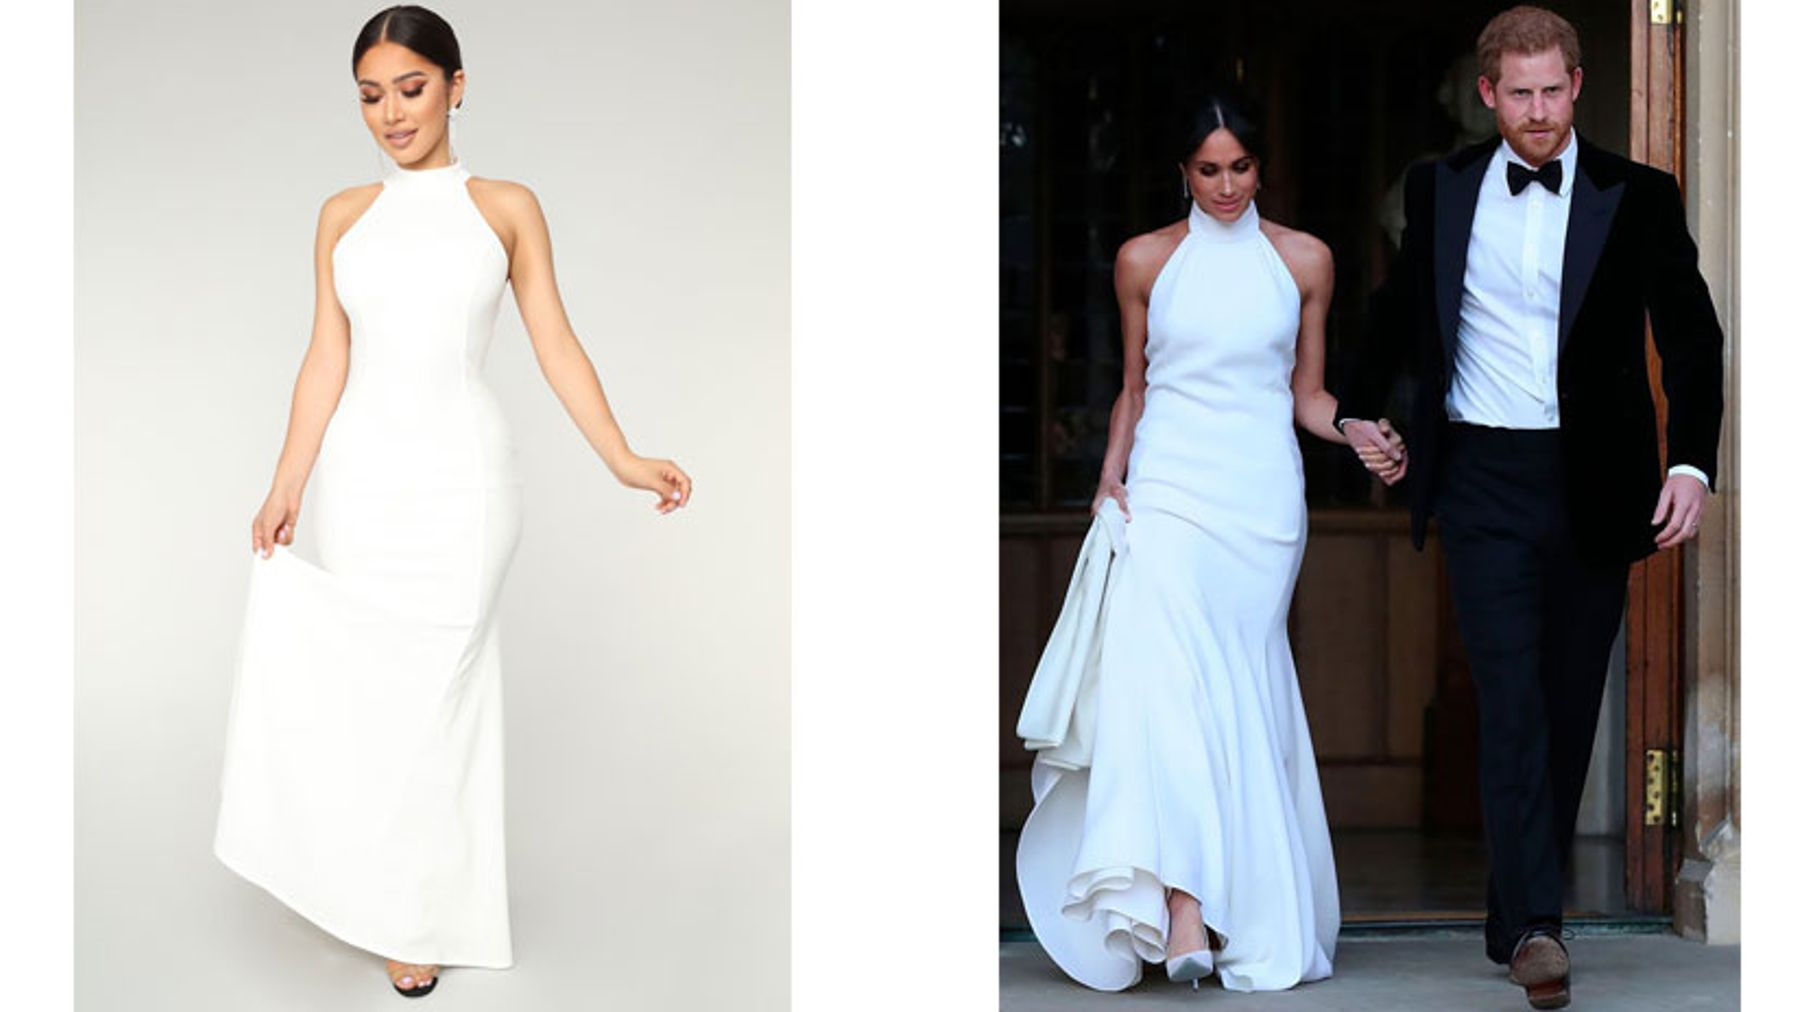 6567ce8d4775 For £35 You Can Now Get A Replica Of Meghan's Stella McCartney ...